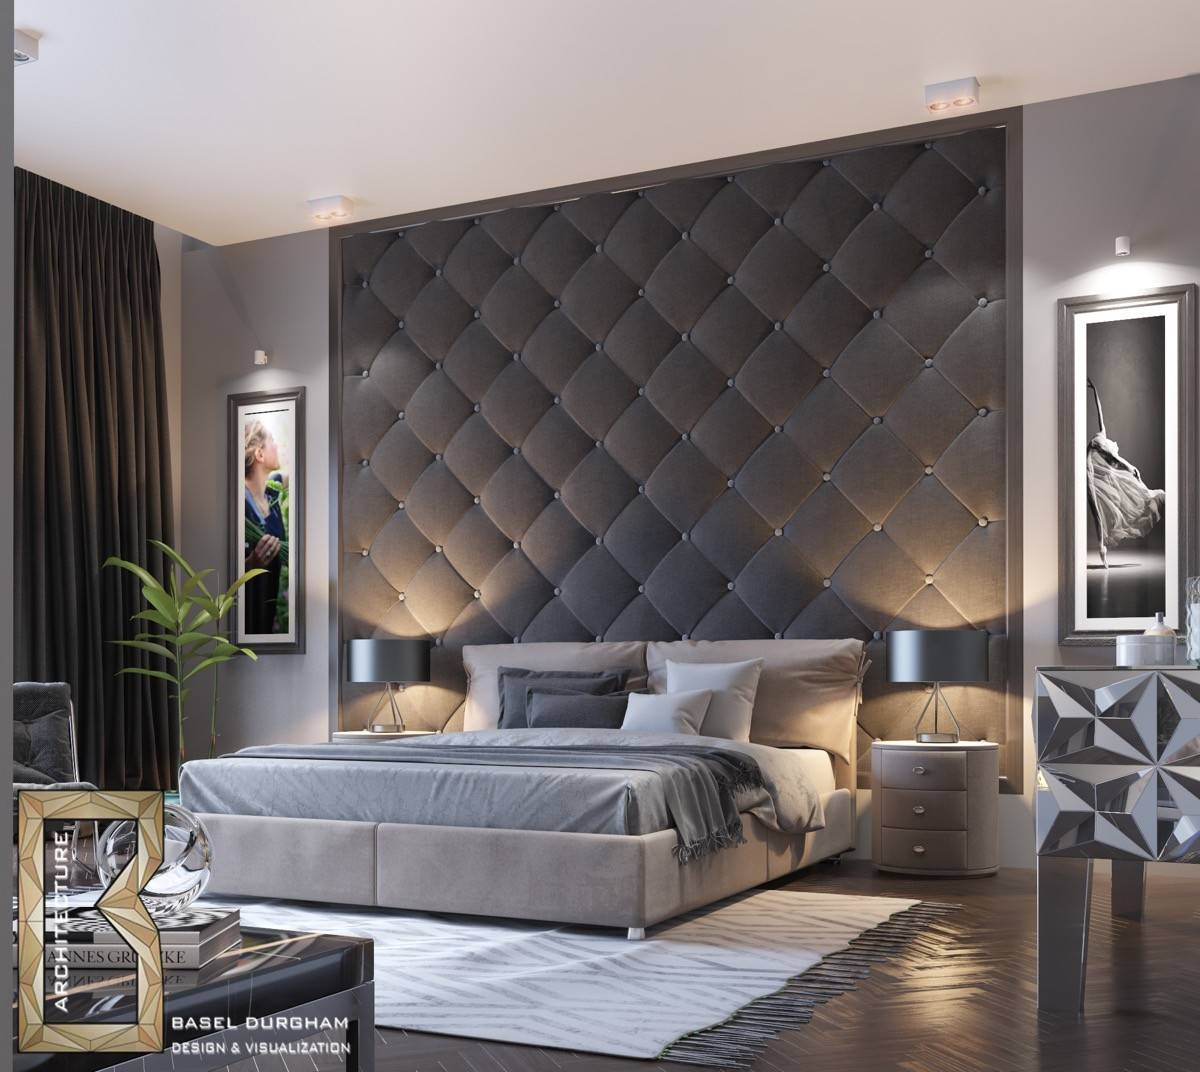 Do Not For Accent Wall: Awesome Accent Wall Ideas Your Bedroom